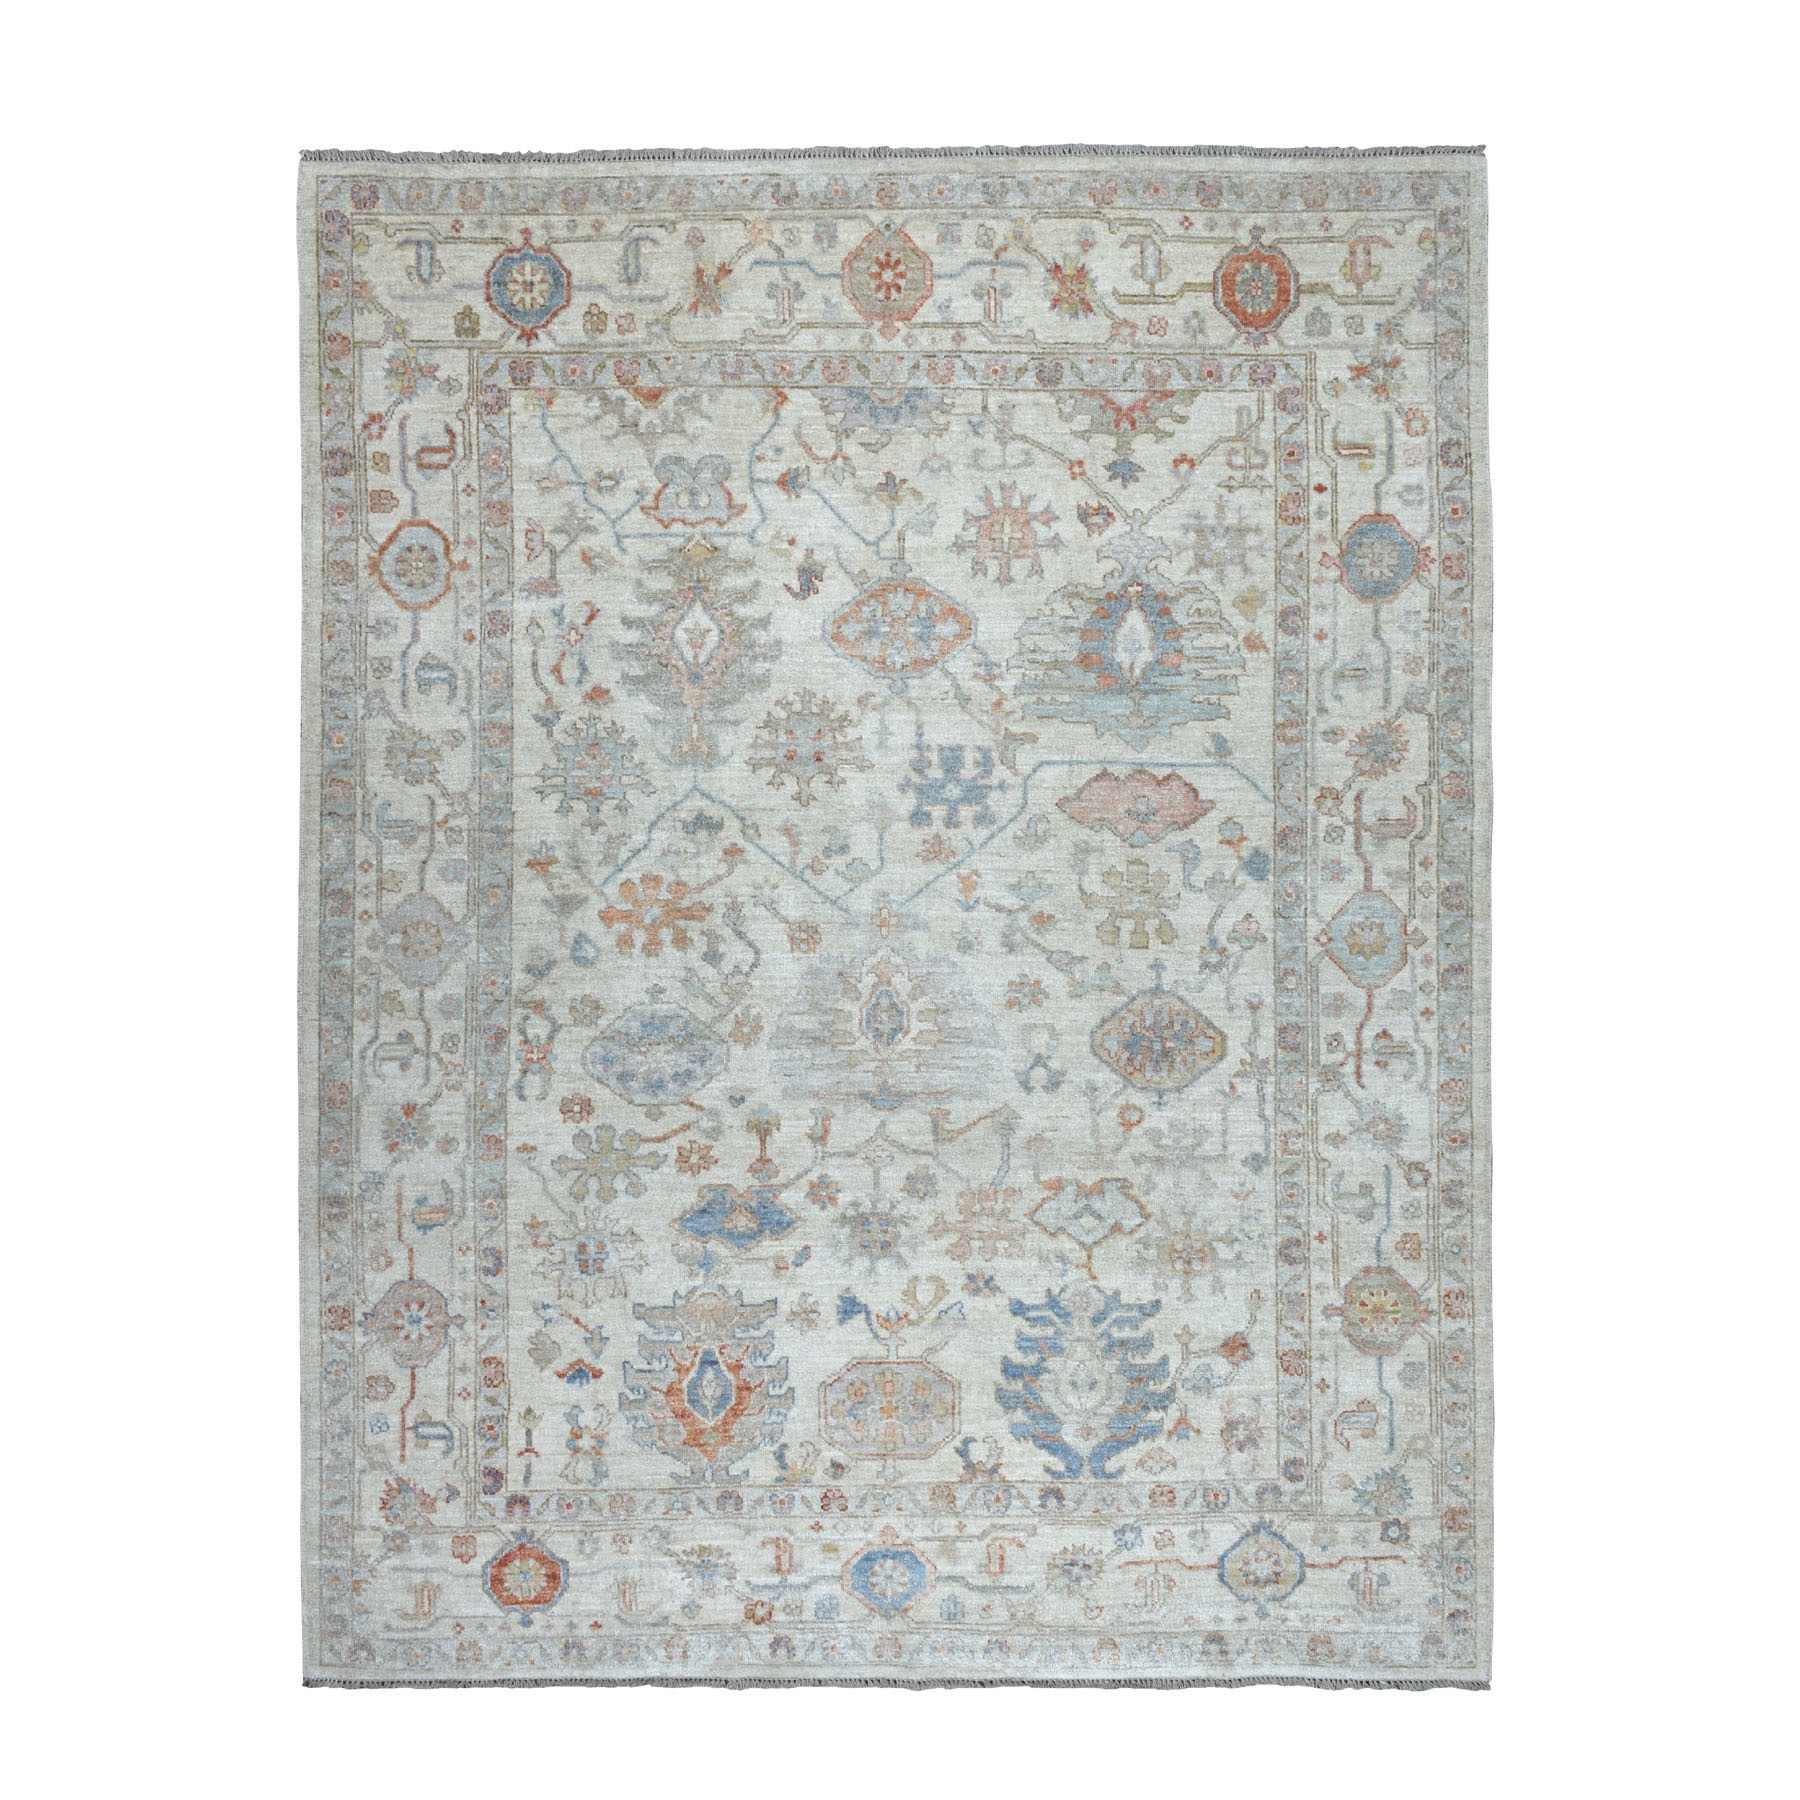 8'x10' Ivory Angora Oushak Pure Wool Hand Knotted Oriental Rug